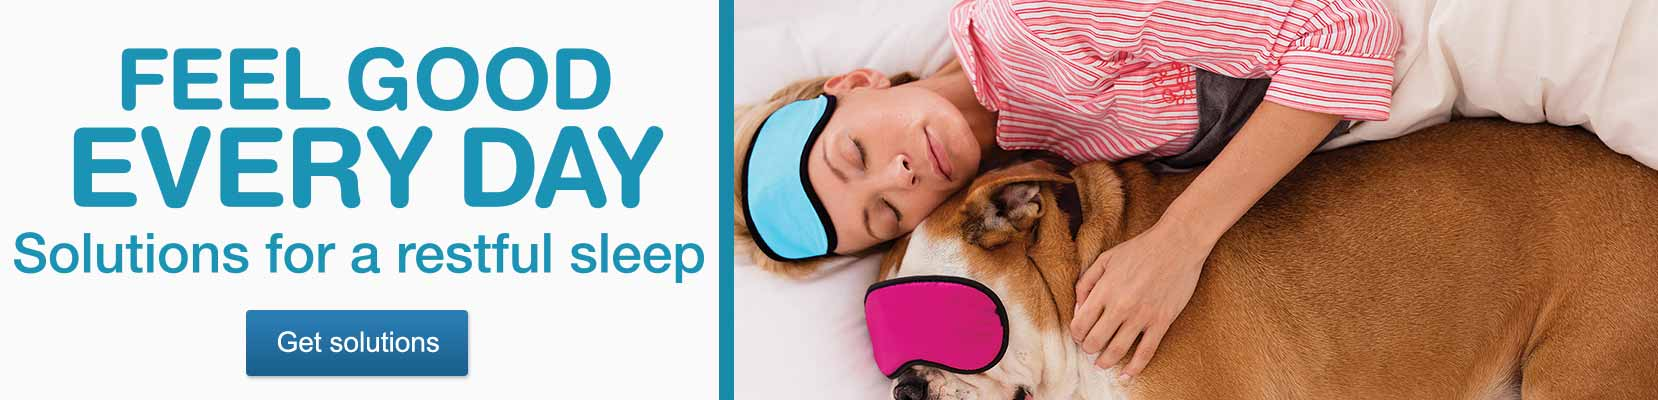 Feel Good Every Day. Solutions for a restful sleep. Get solutions.